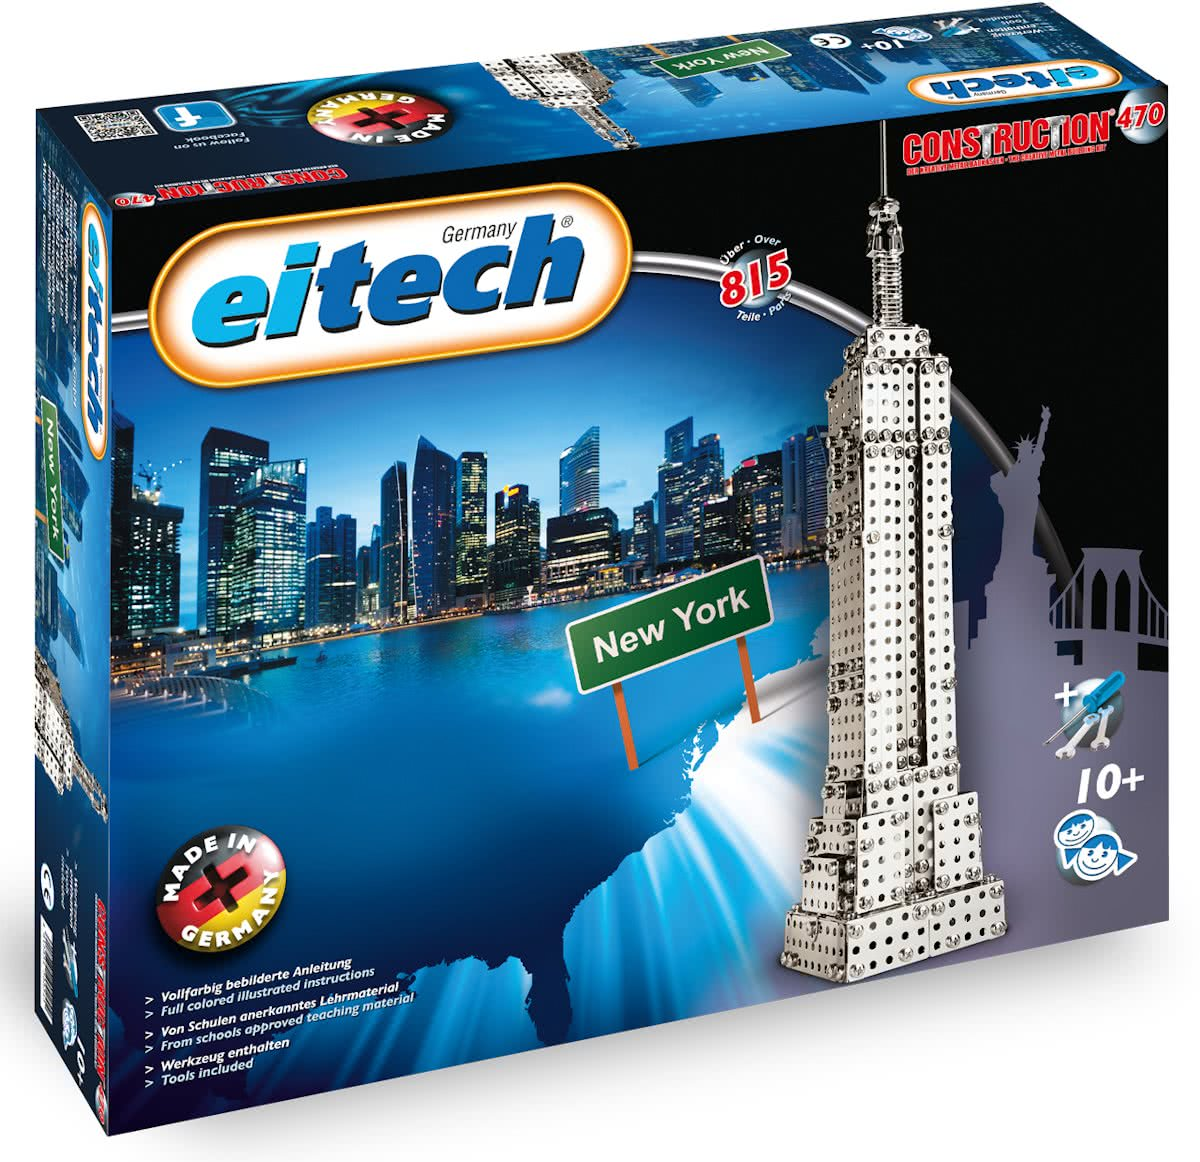 Eitech Constructie - Bouwdoos - Empire State Building in New York